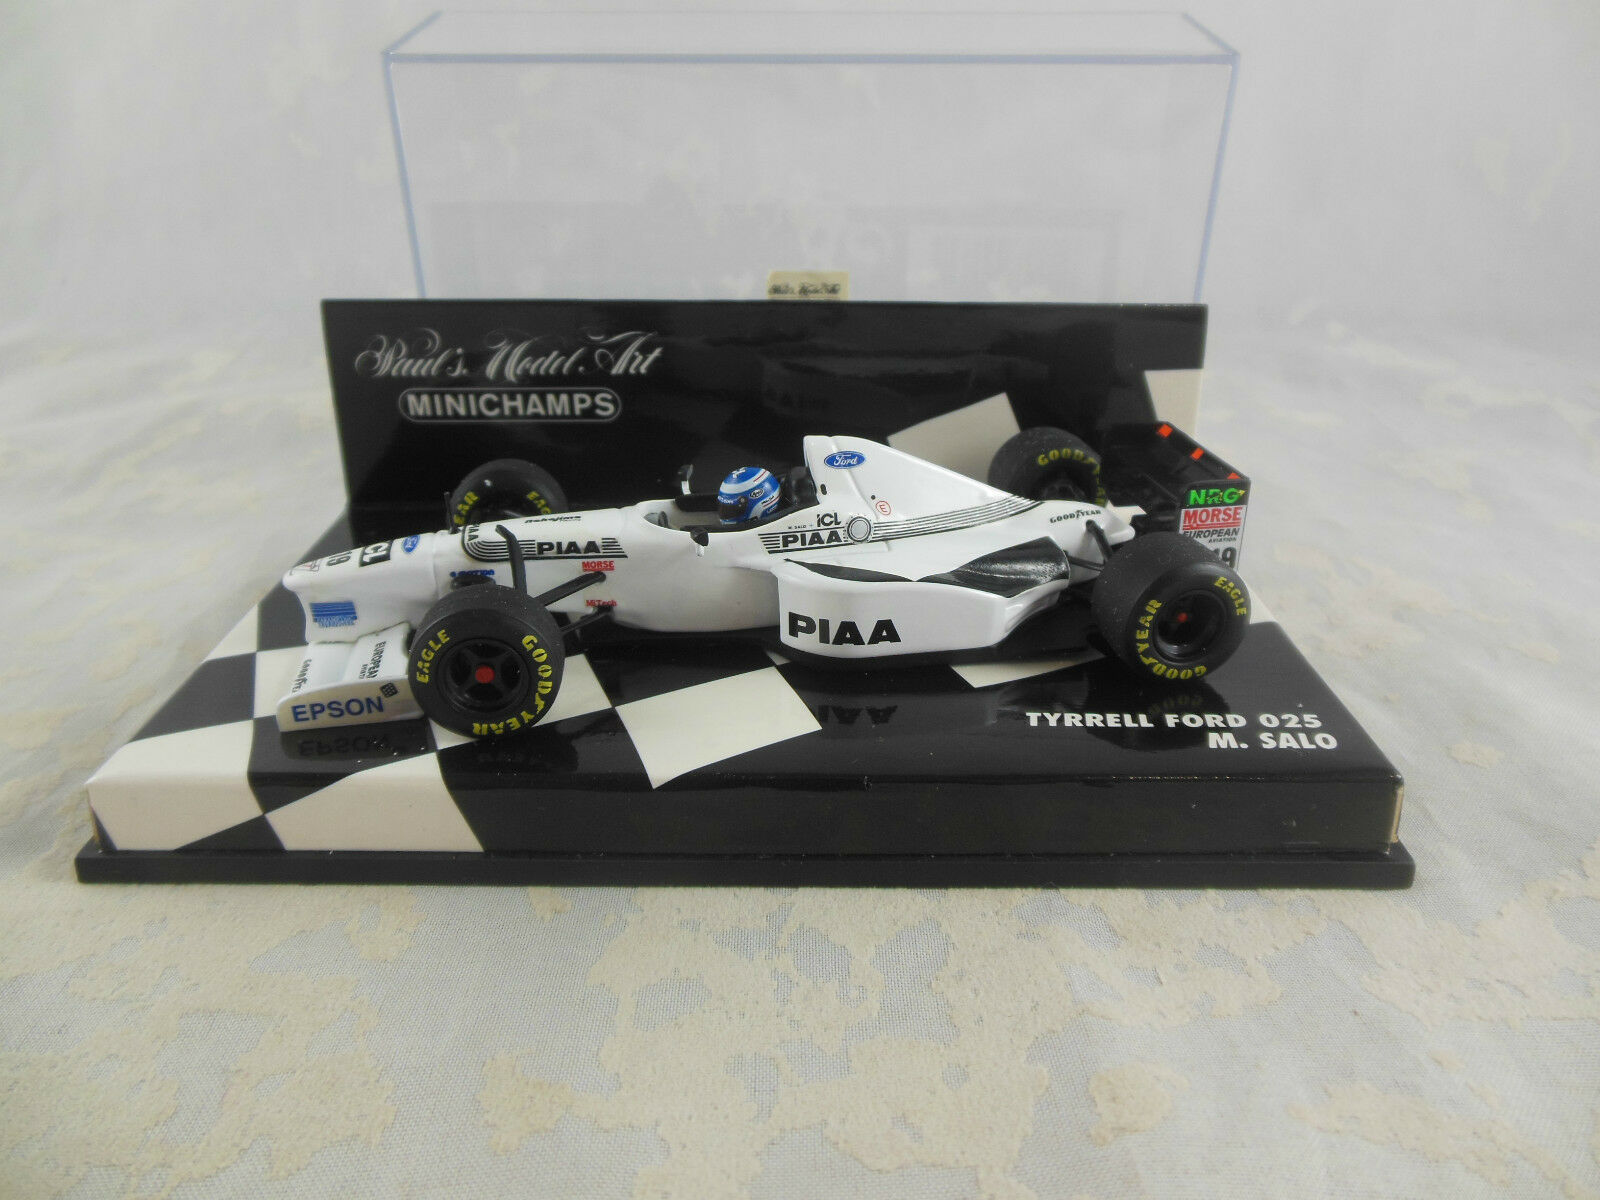 Minichamps 430 970019 1997 Tyrrell Ford 025 Mika Salo Racing No19 1 43 Scale